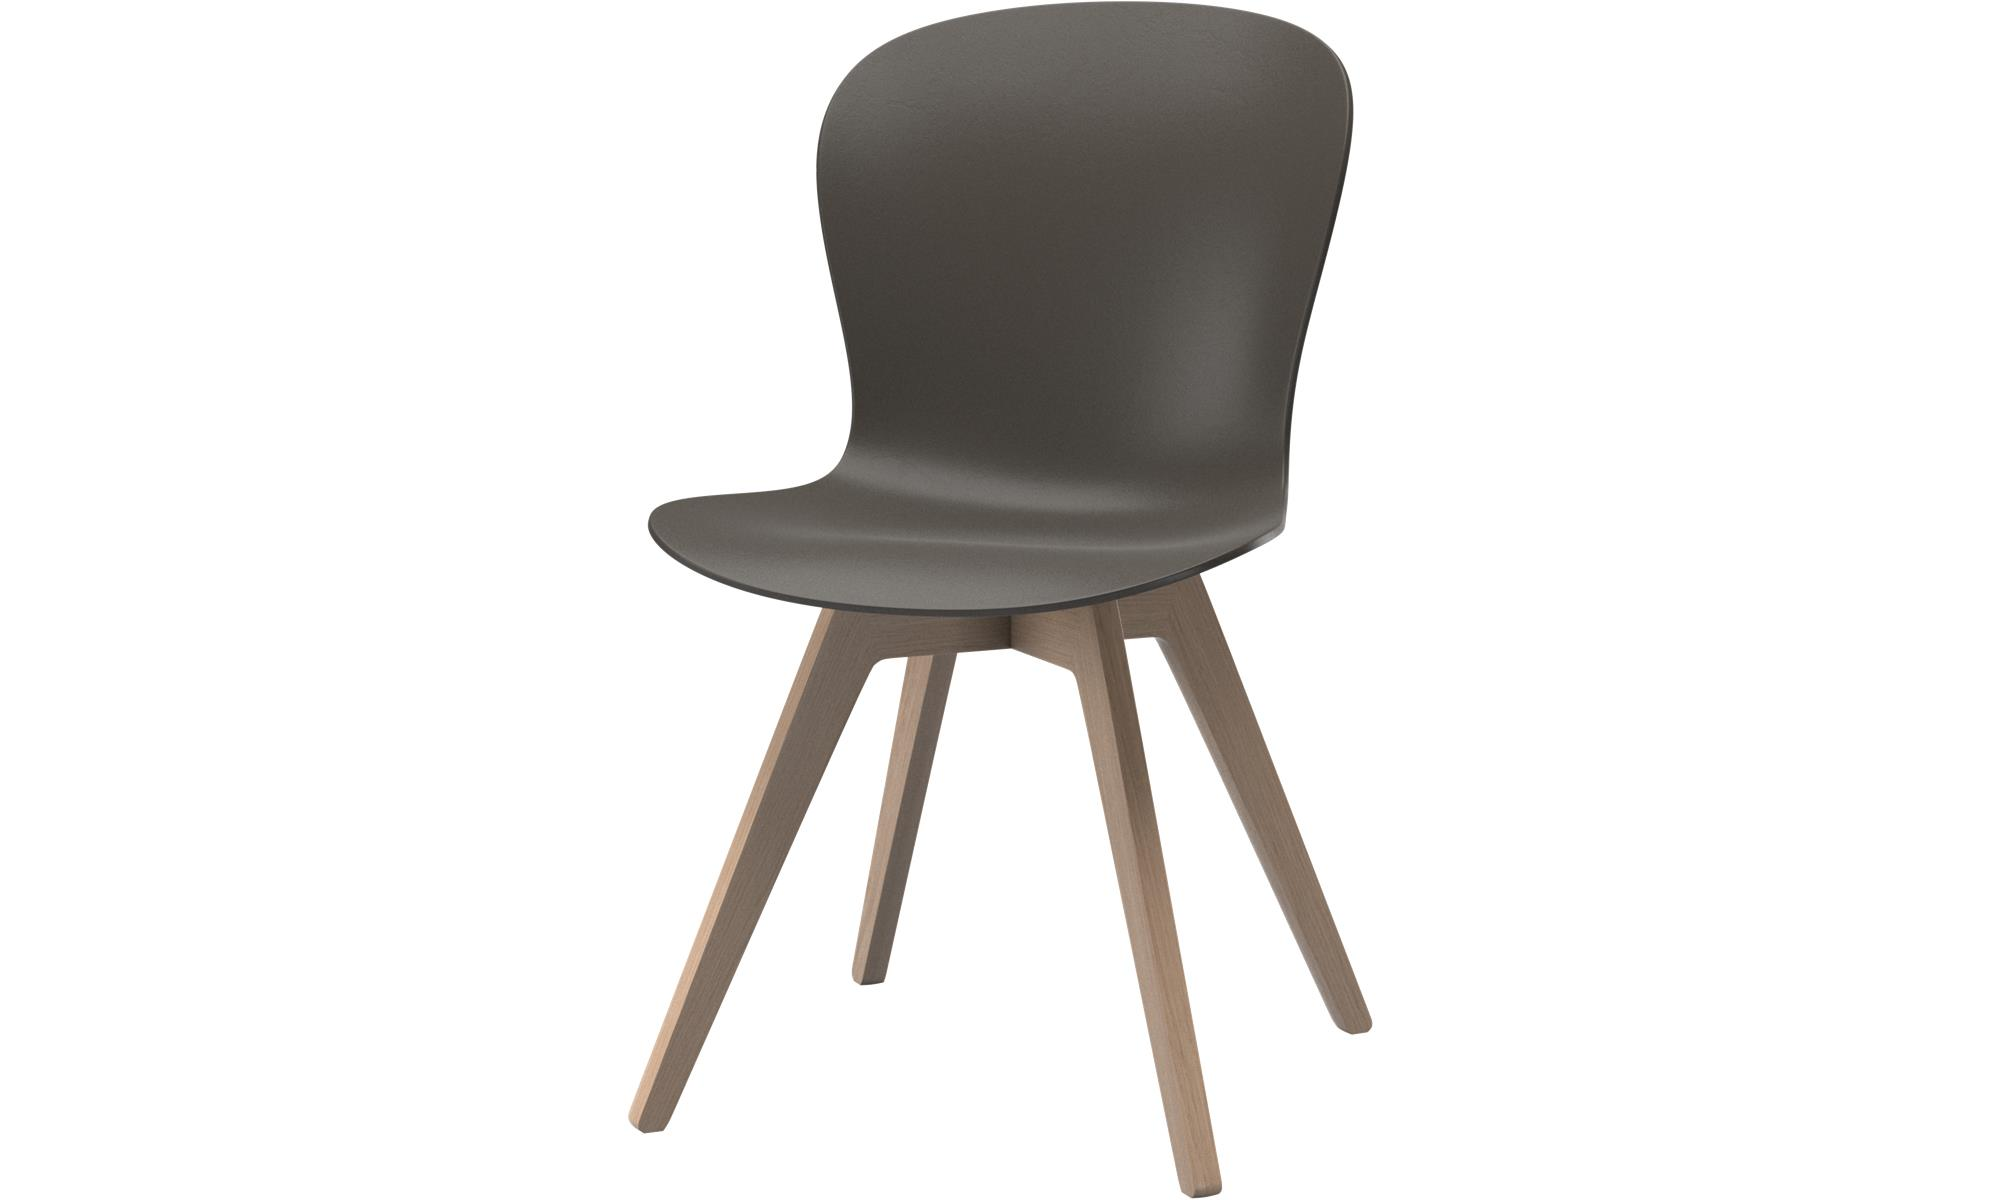 Dining chairs - Adelaide chair - Green - Oak